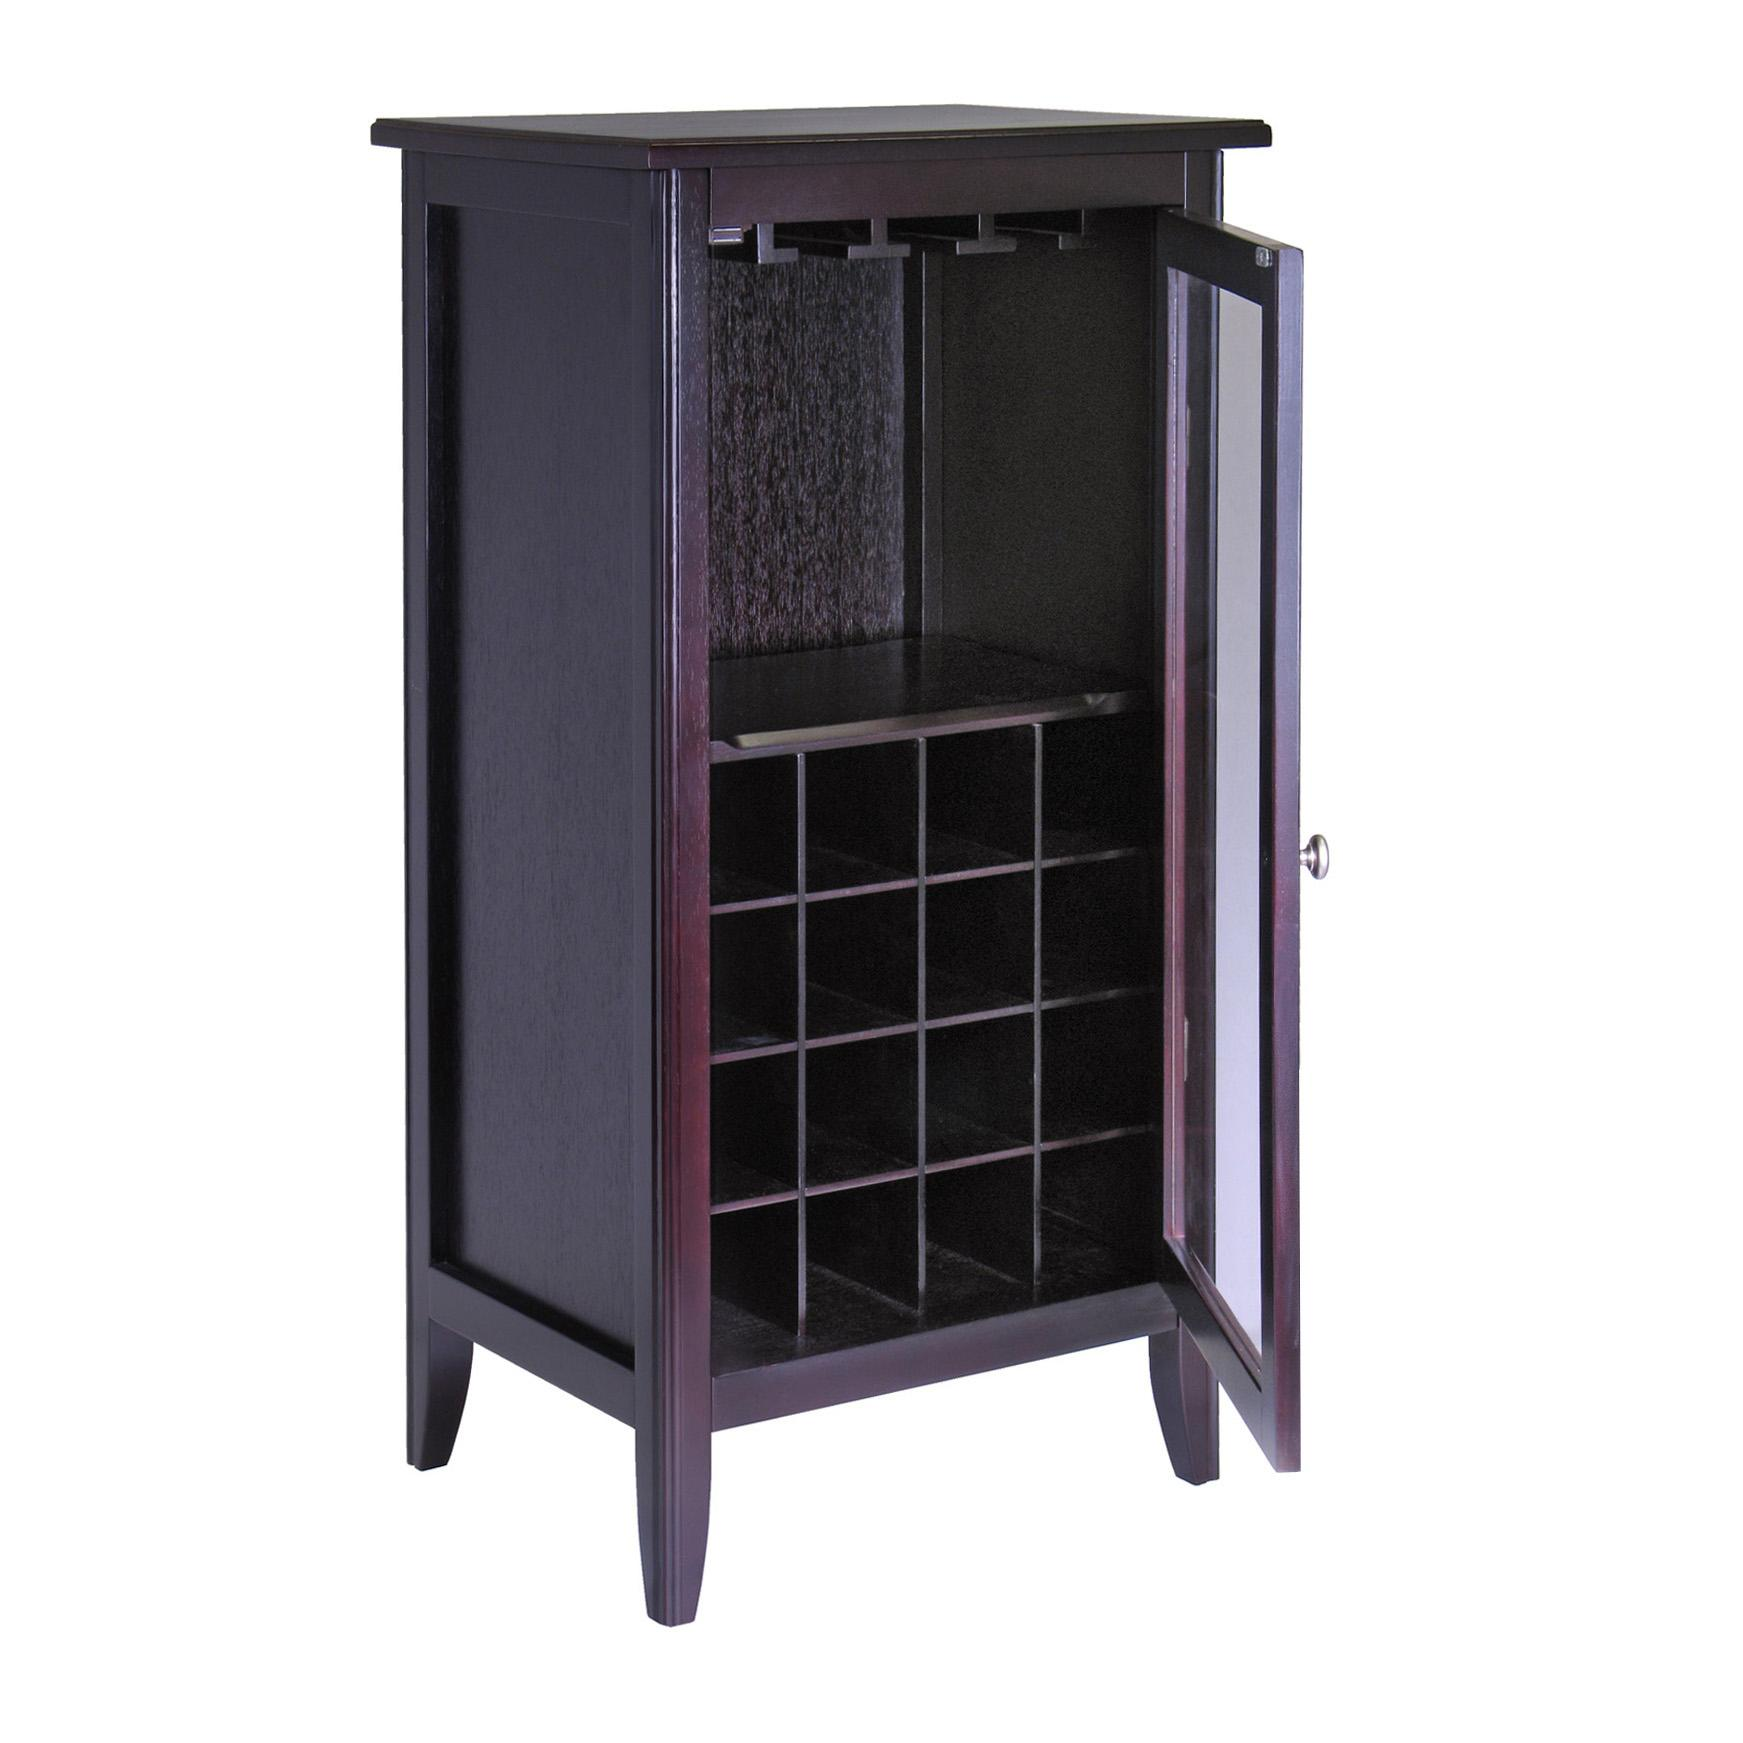 Winsome wood wine cabinet with glass door for Kitchen cabinets amazon